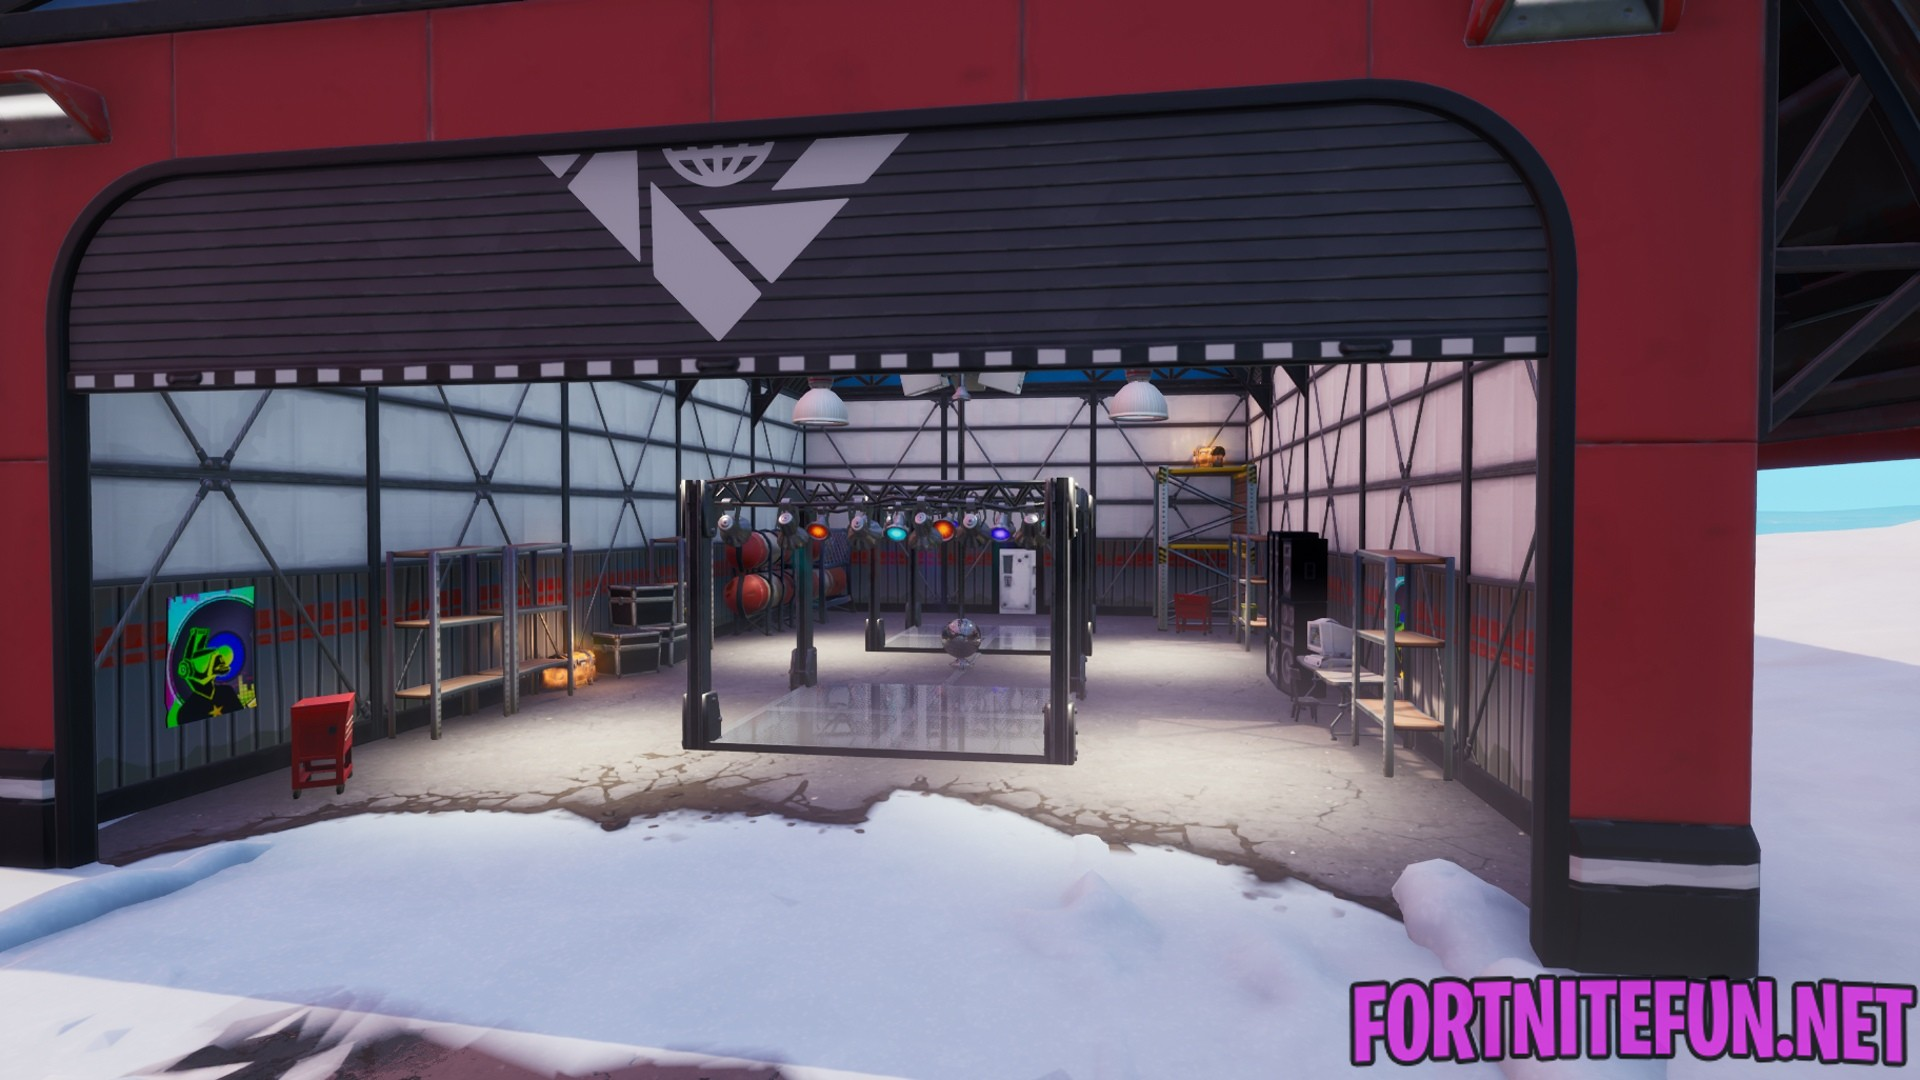 Dance With Others To Raise The Disco Ball In An Icy Airplane Hangar Fortnite Boogie Down Fortnite Battle Royale